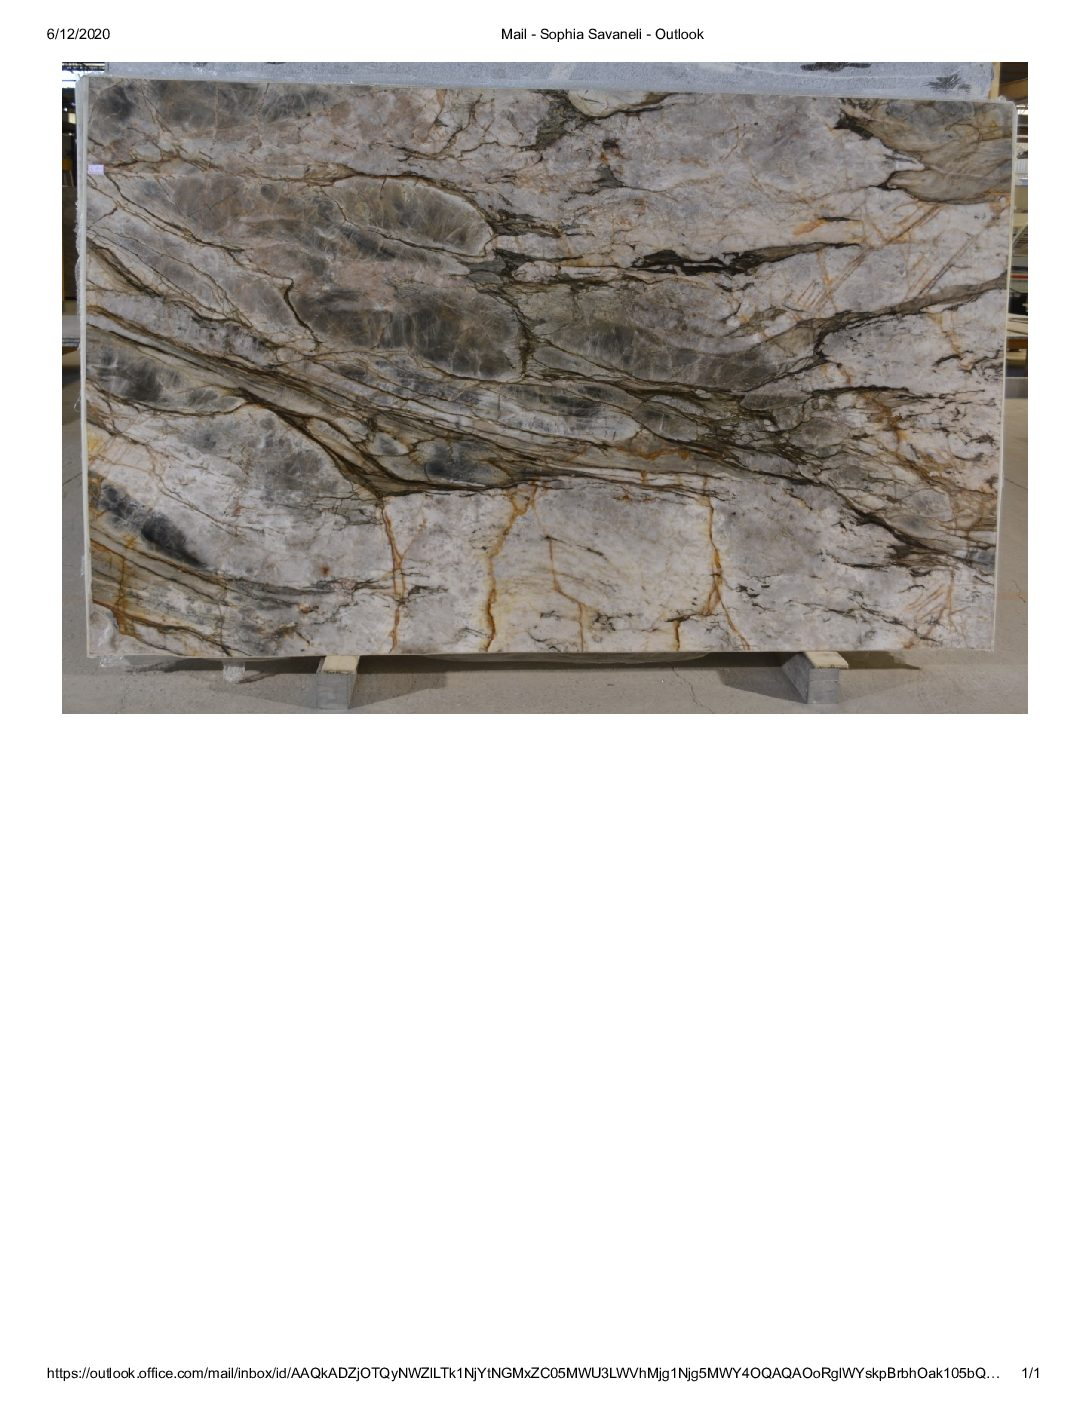 Tempest Crystal Quartzite 3CM / #36905 (118″ x 71″) Group I